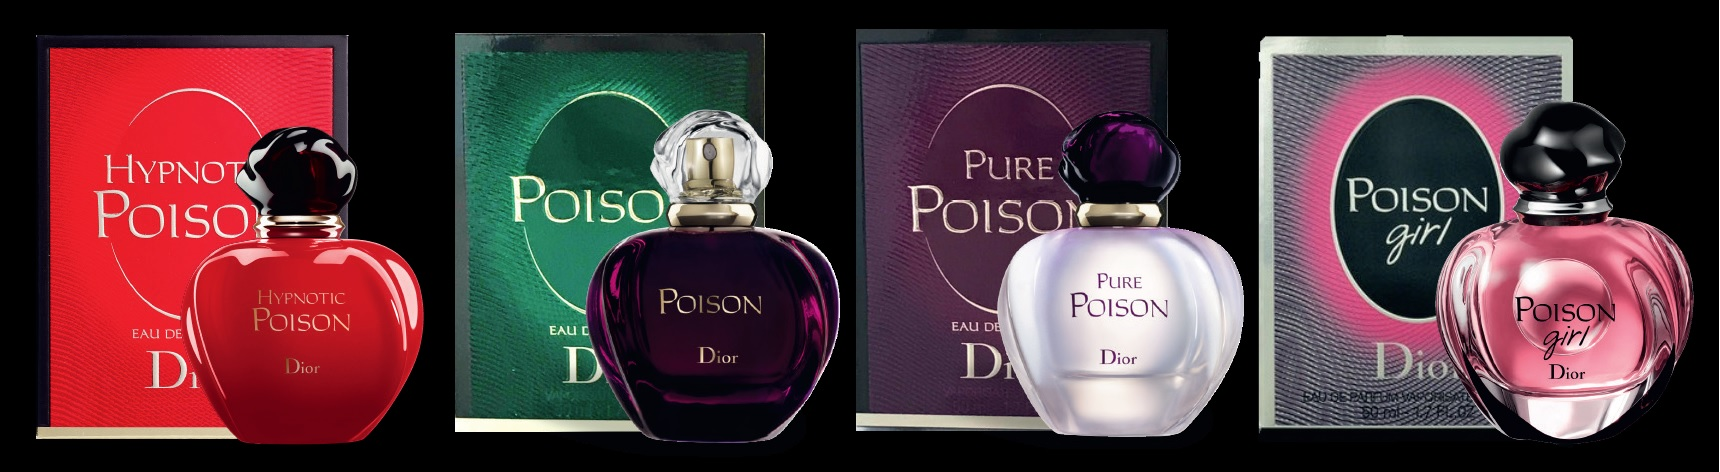 dior poison collection